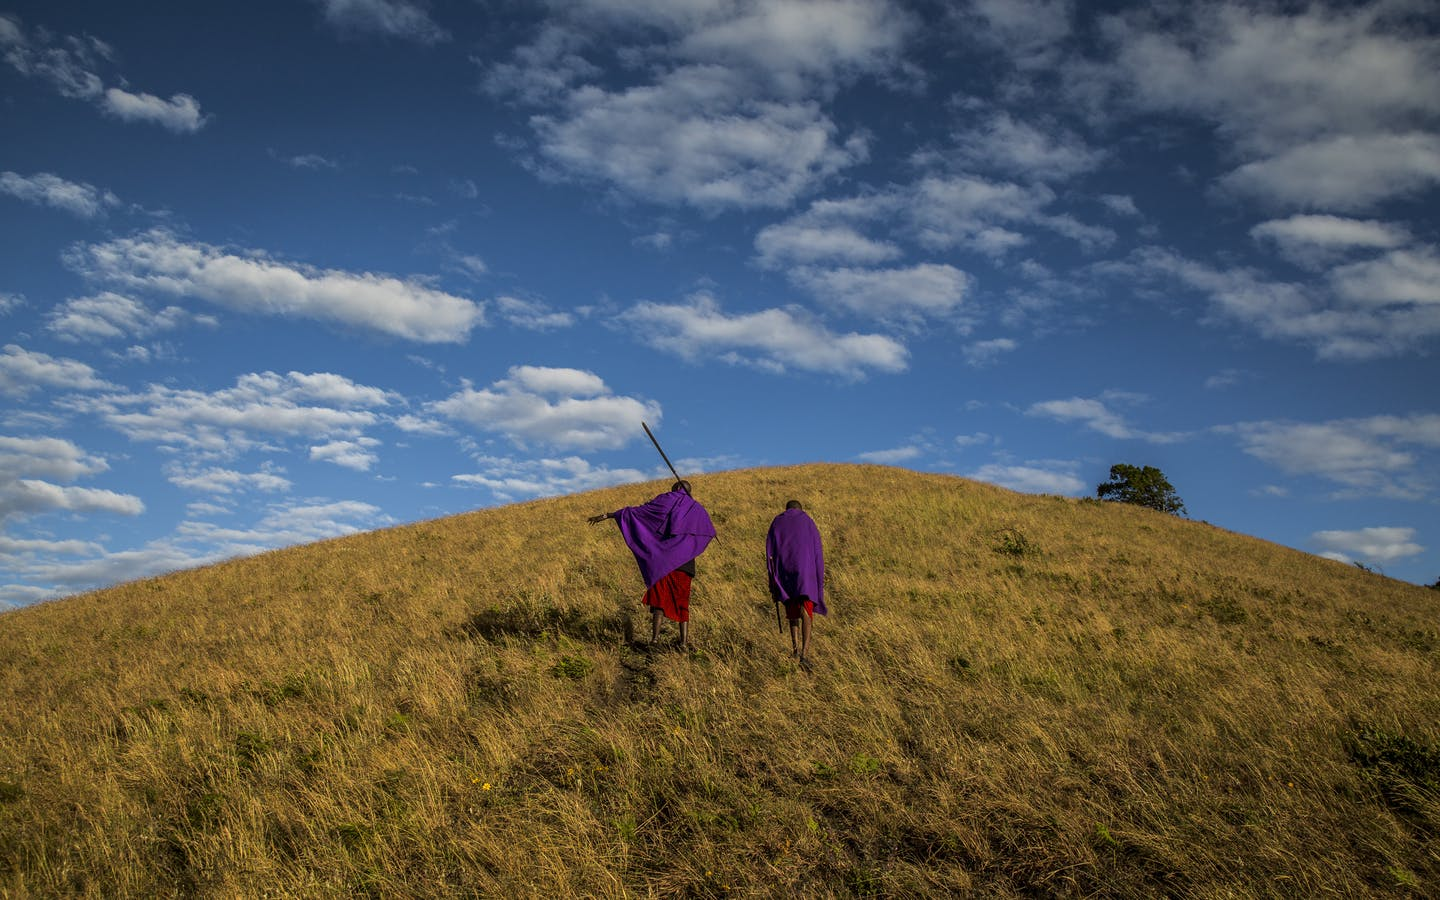 Maasai guides who work with the Maasai Wilderness Conservation Trust, make their way up to the Chyulu Hills cloud forest